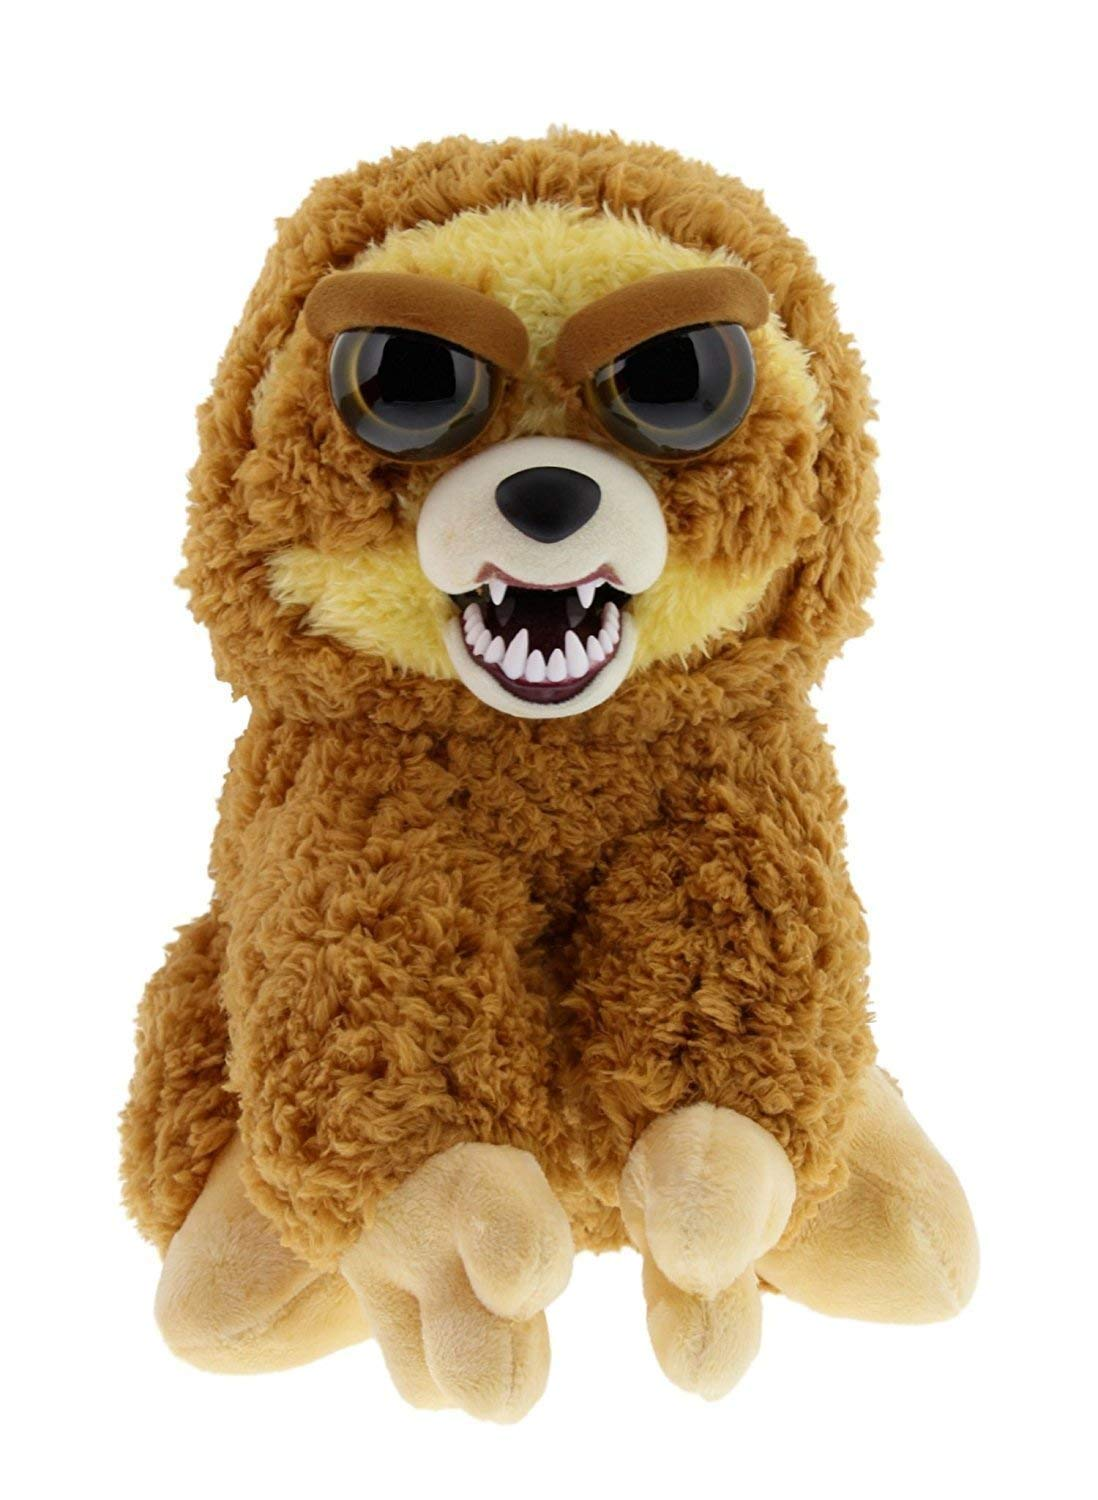 Plush Interactive Toys Online Shopping For Clothing